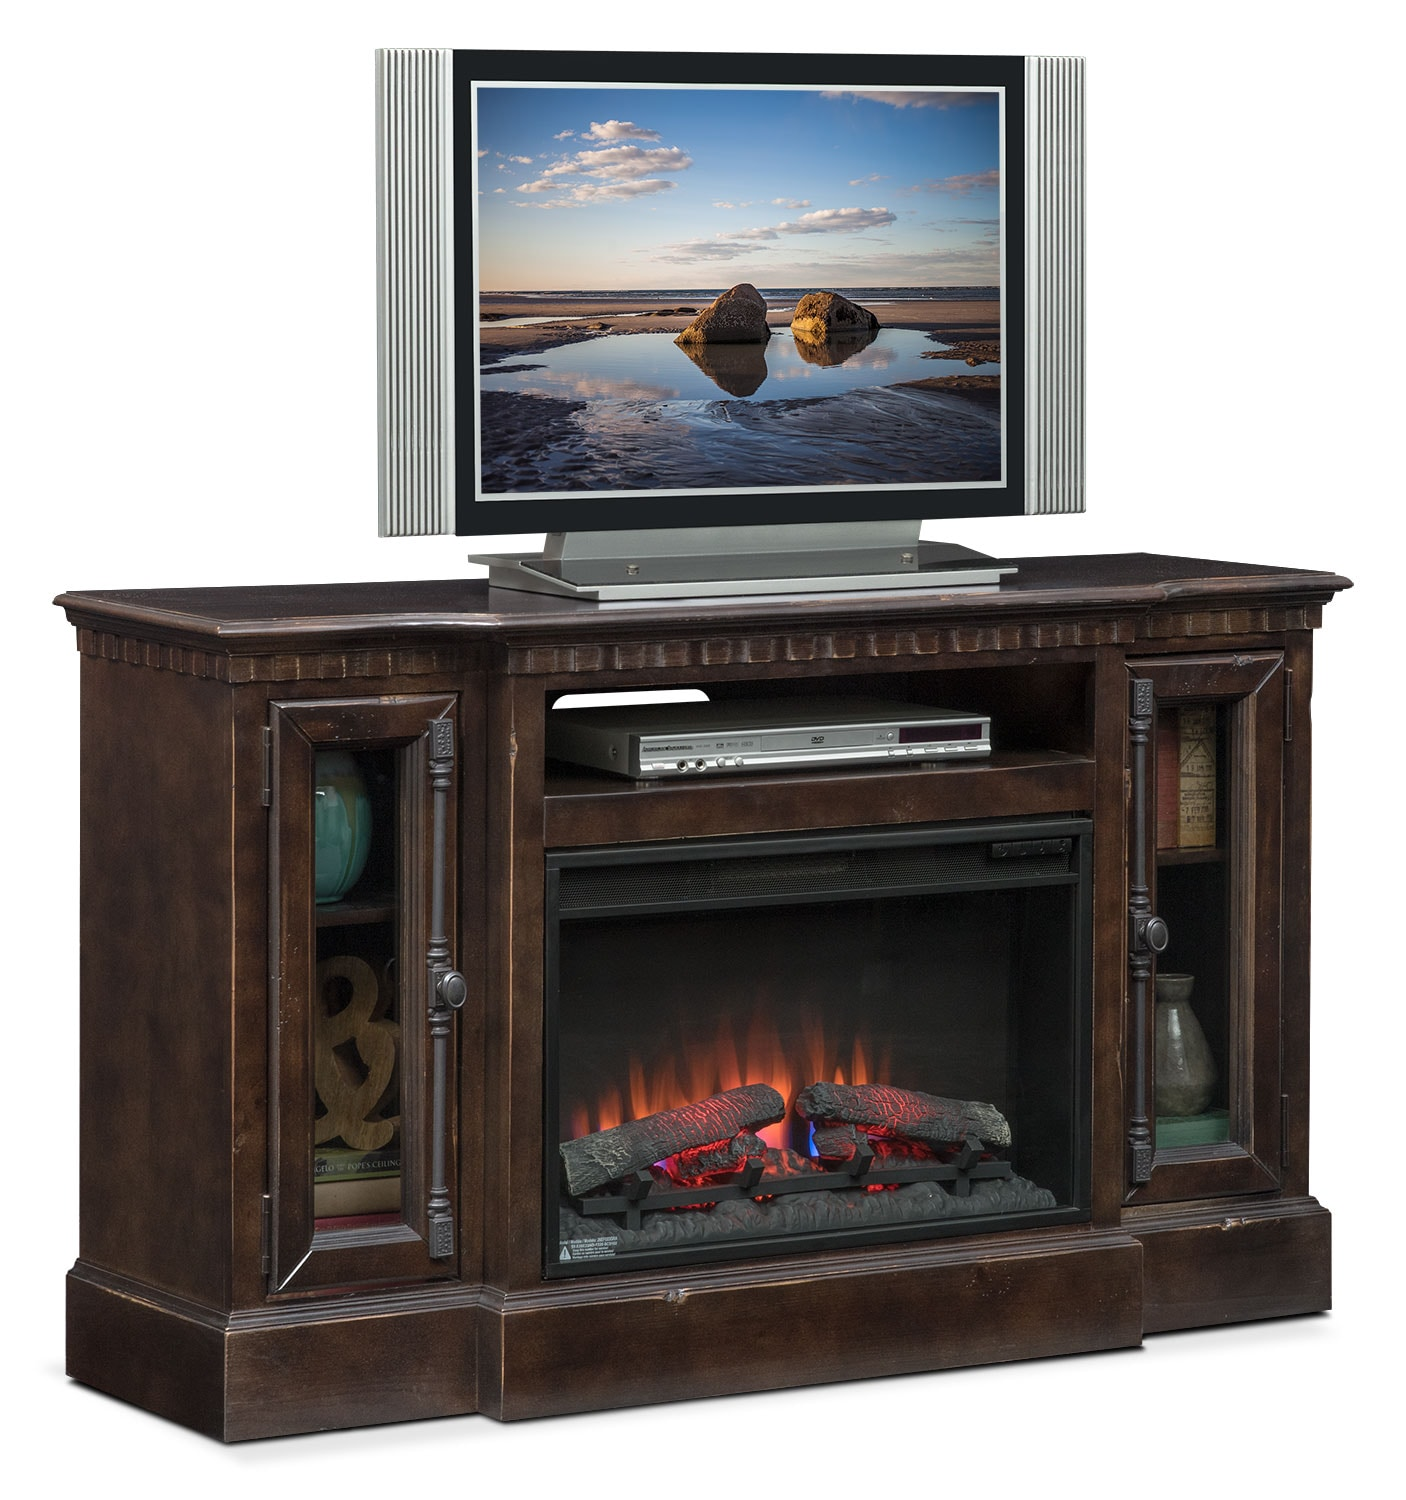 "Claridge 54"" Traditional Fireplace Media Stand - Tobacco"